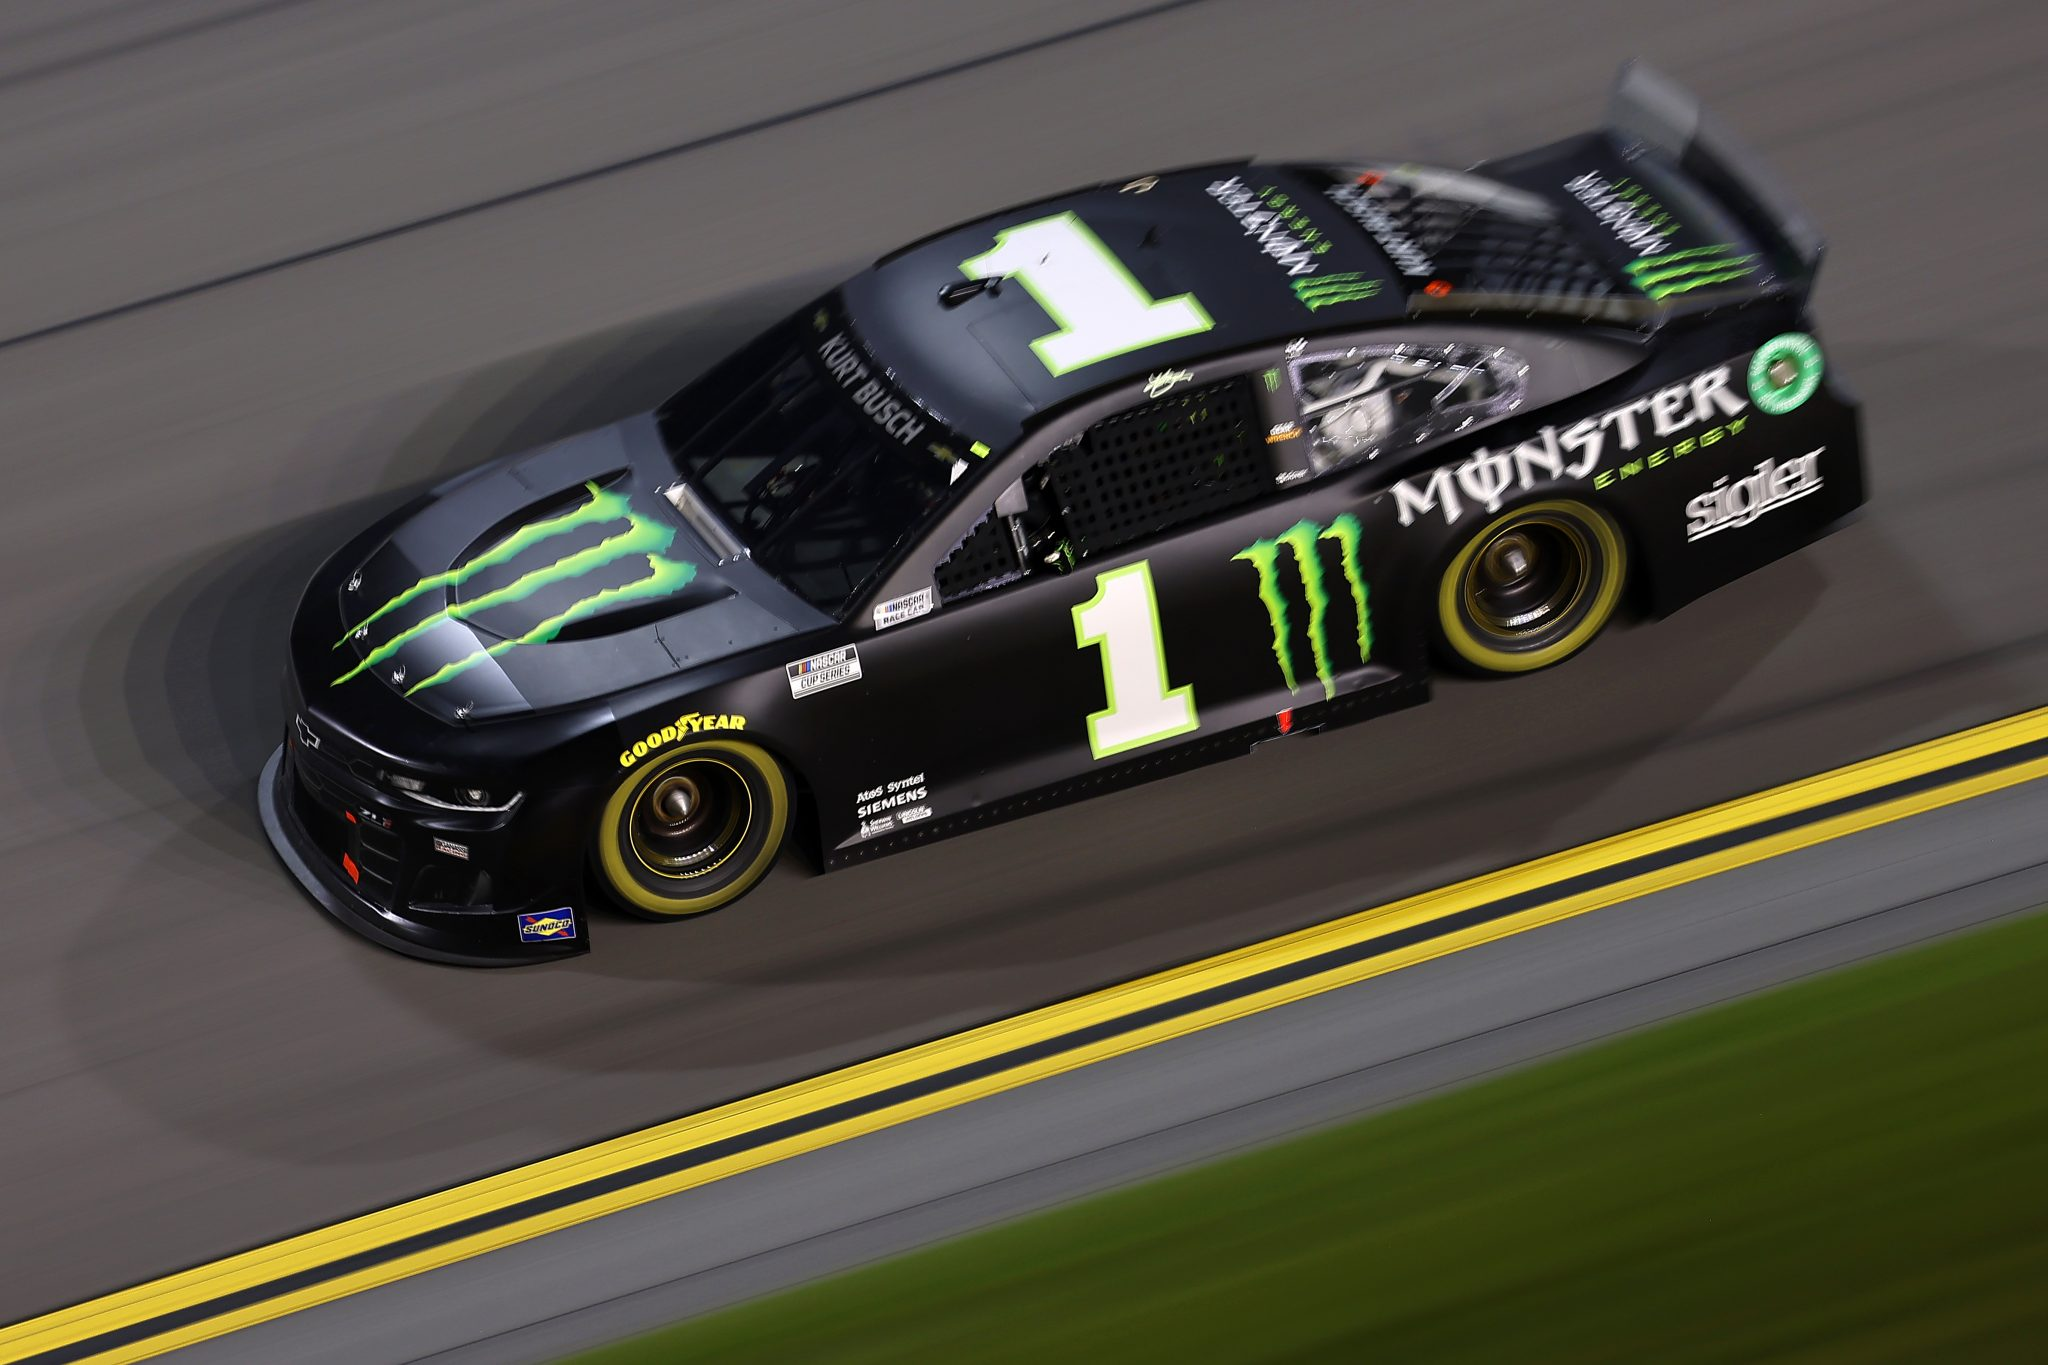 DAYTONA BEACH, FLORIDA - AUGUST 28: Kurt Busch, driver of the #1 Monster Energy Chevrolet, drives during the NASCAR Cup Series Coke Zero Sugar 400 at Daytona International Speedway on August 28, 2021 in Daytona Beach, Florida. (Photo by James Gilbert/Getty Images) | Getty Images